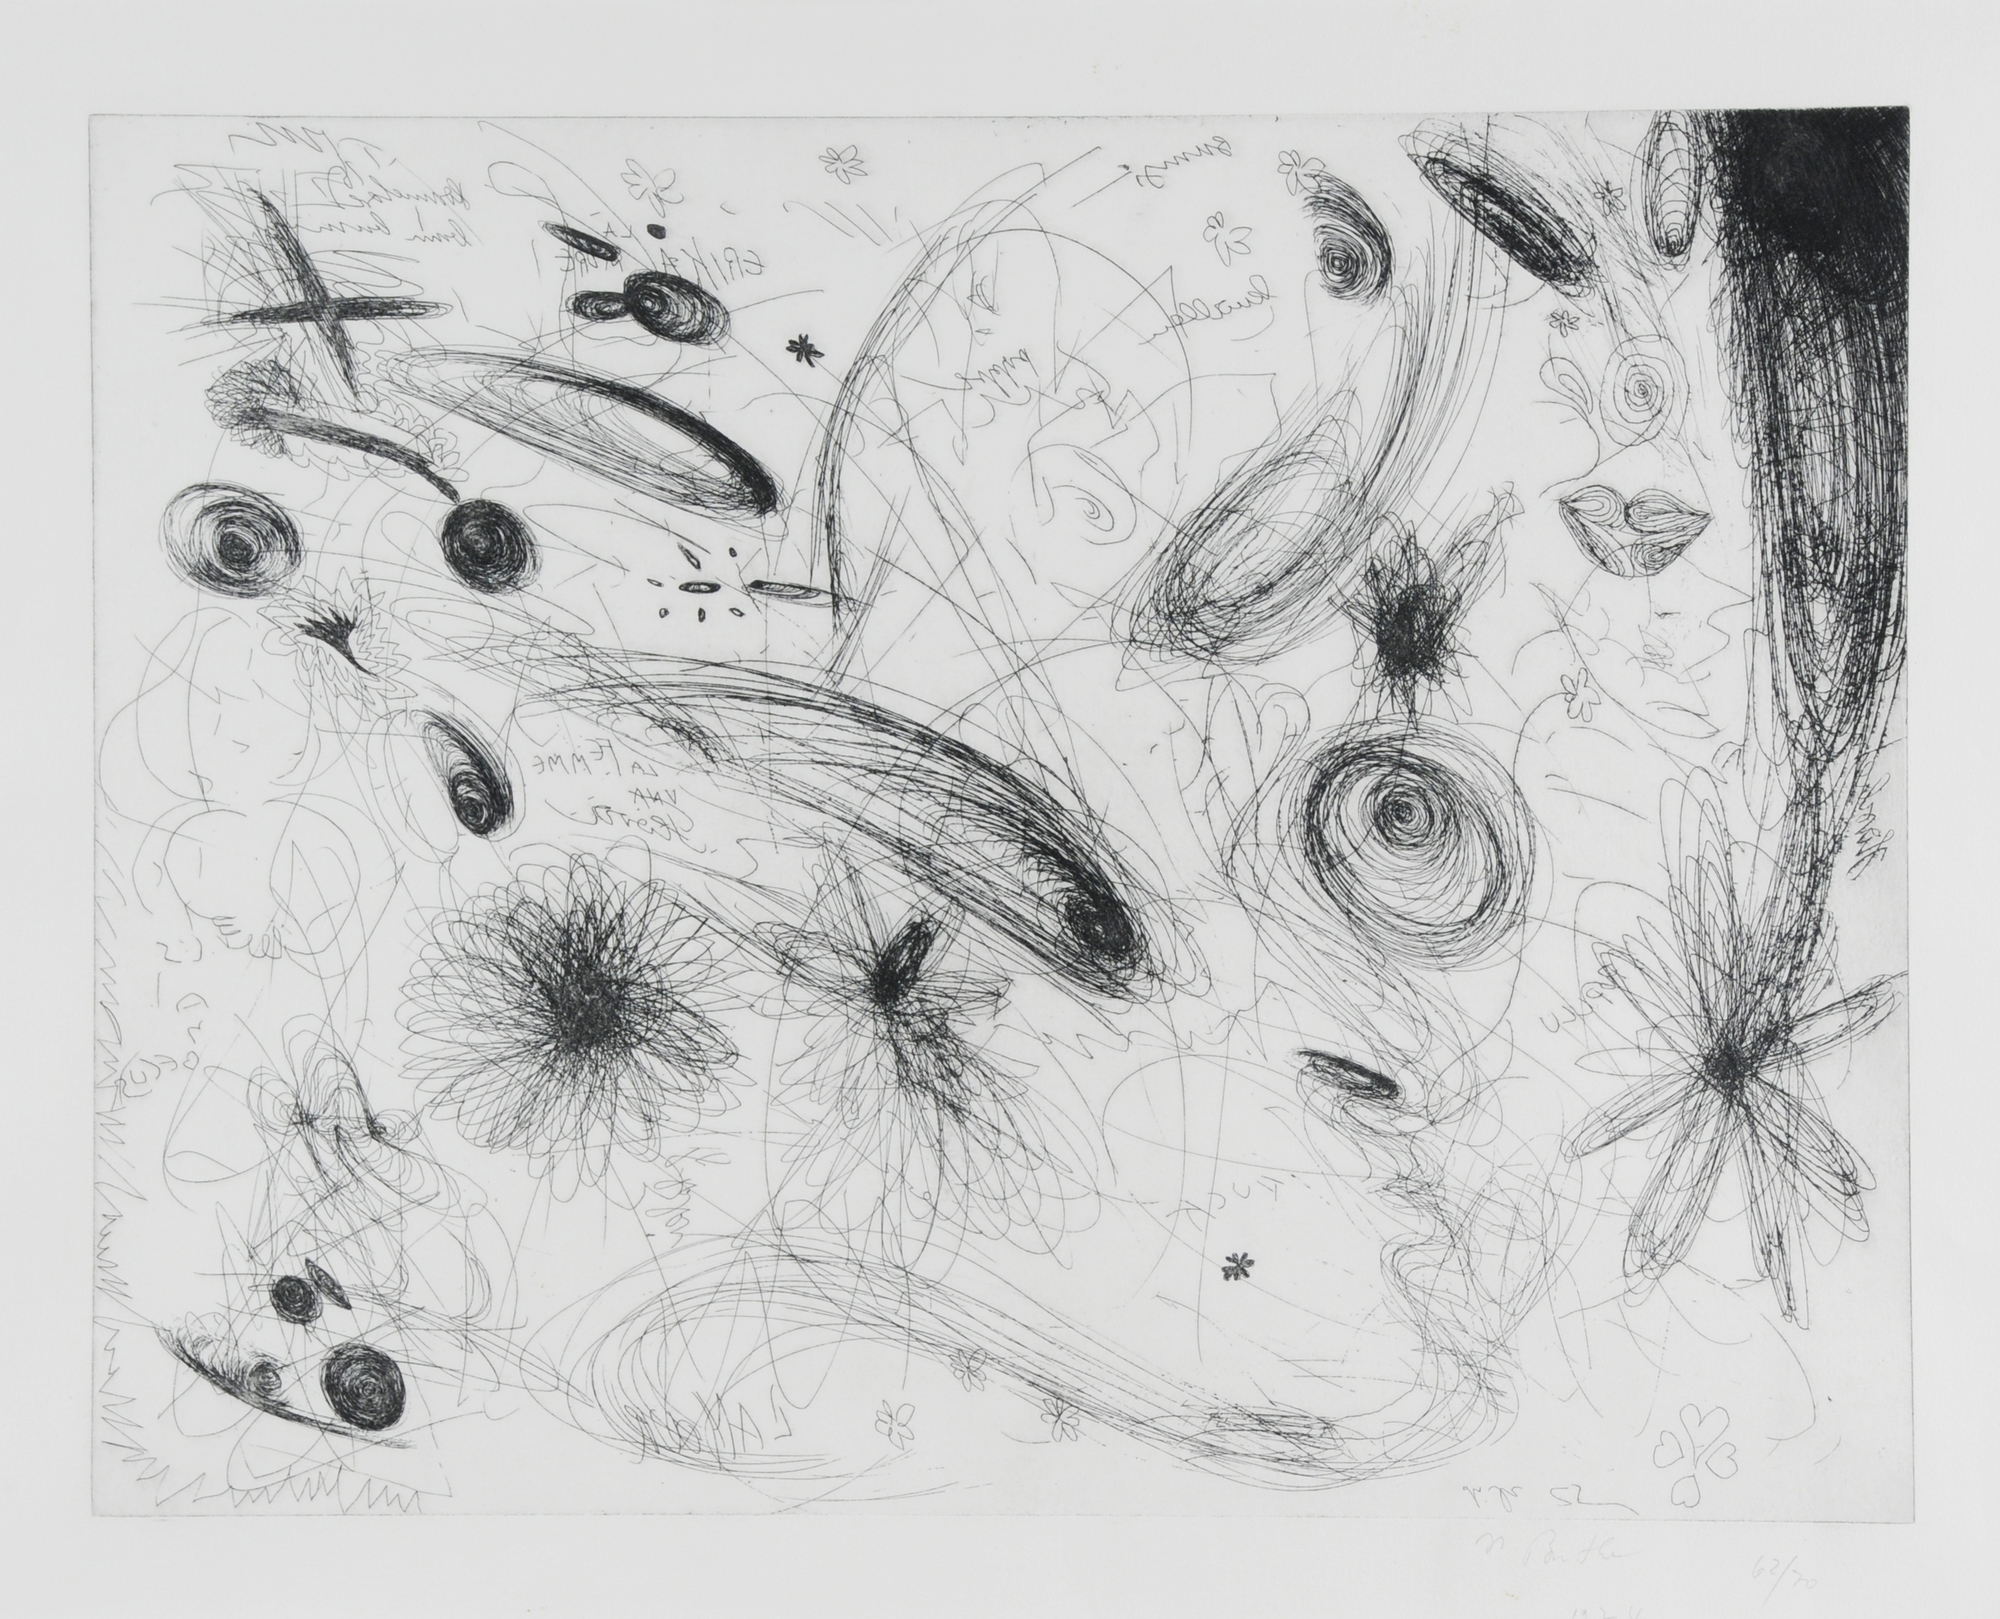 Buthe Michael, 2 sheets: Untitled, 1974; Untitled